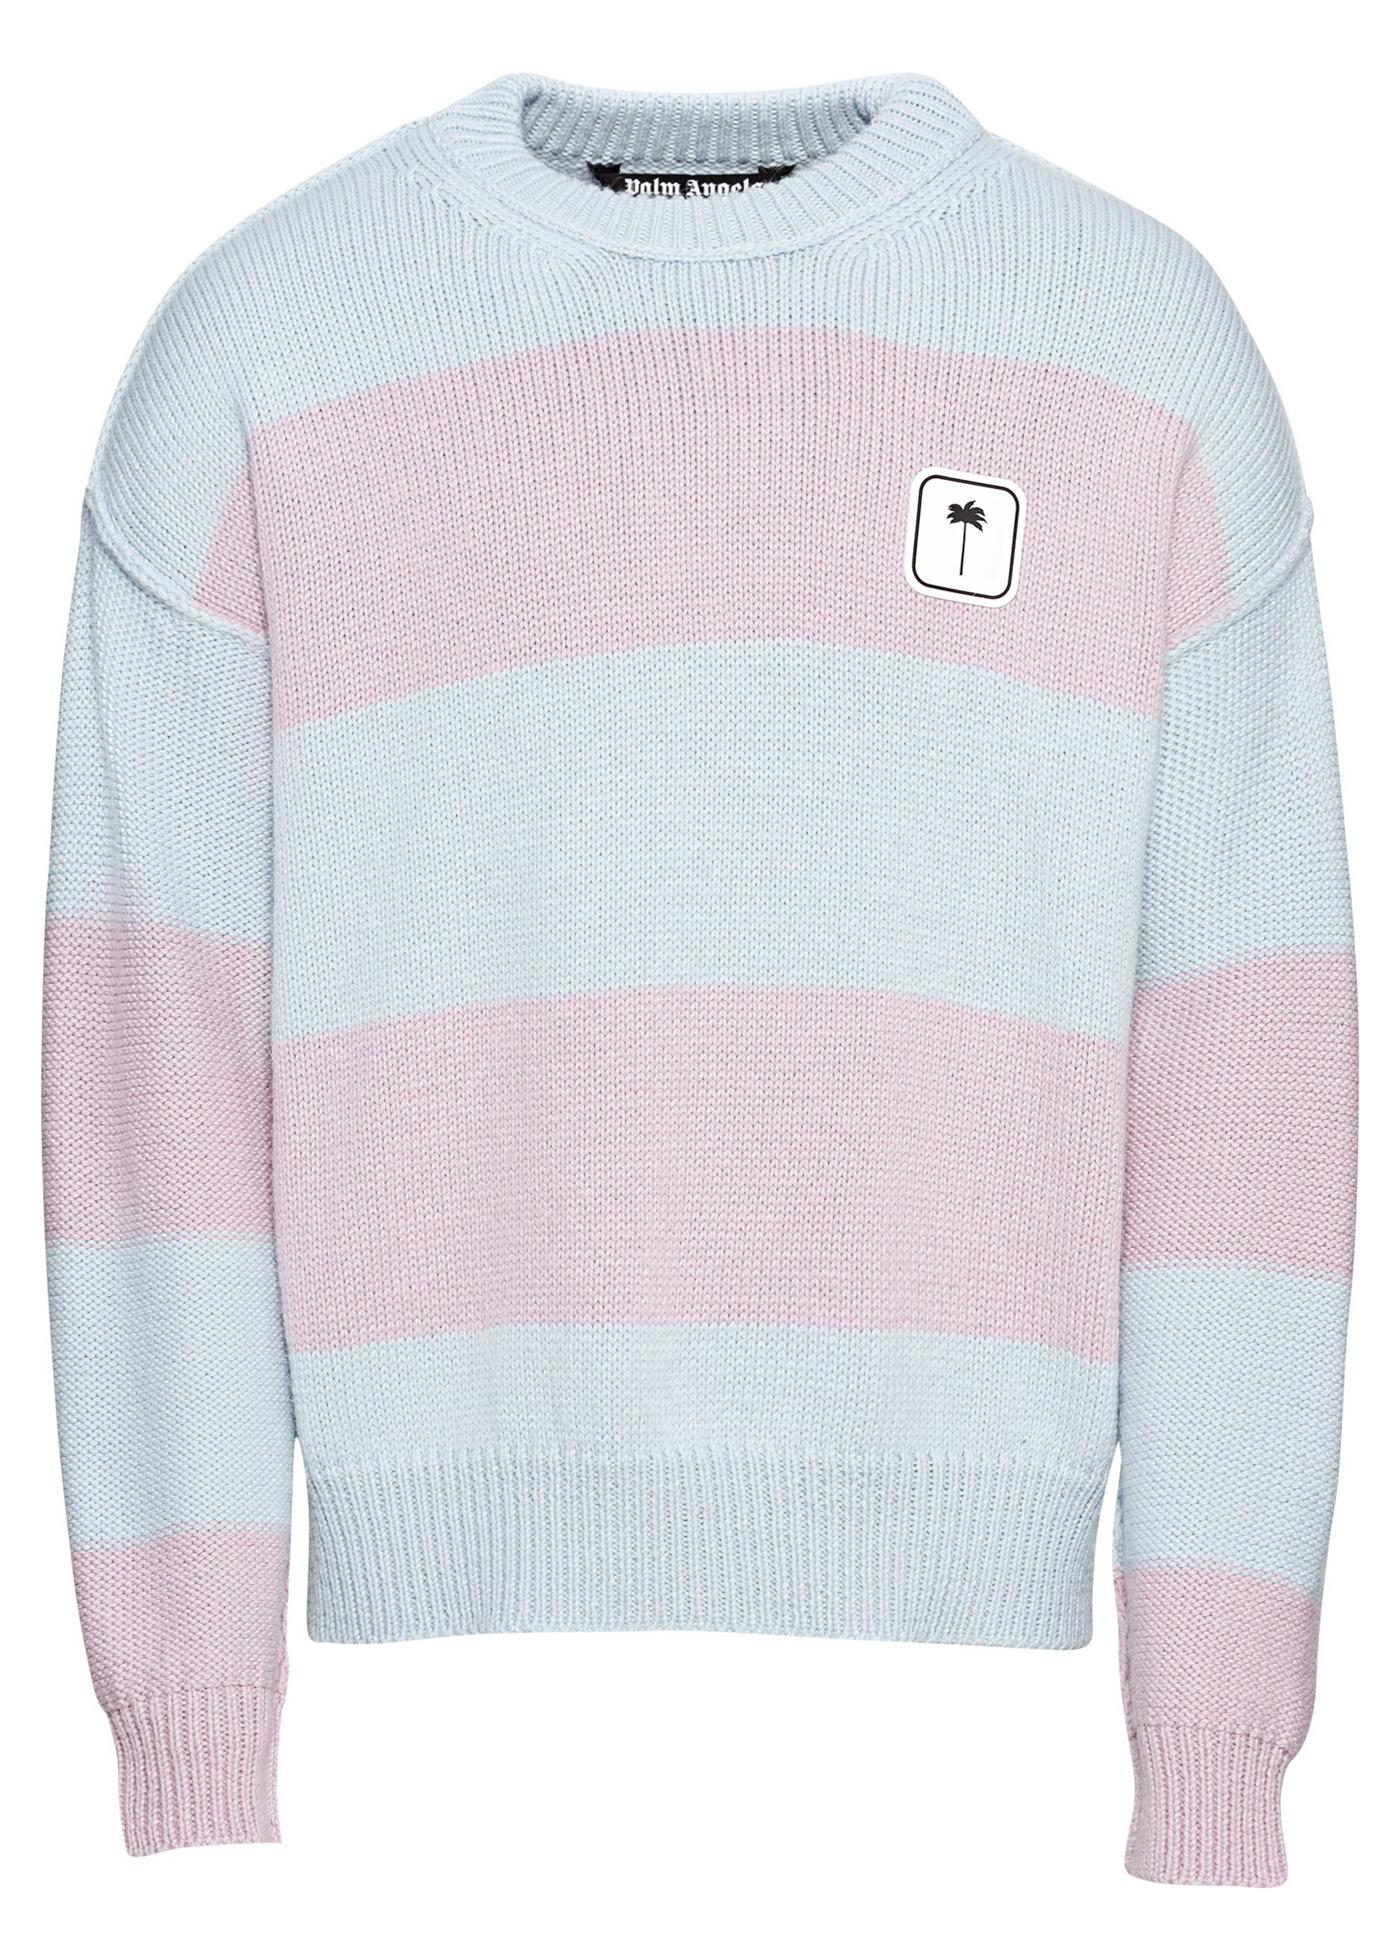 PXP STRIPY SWEATER image number 0